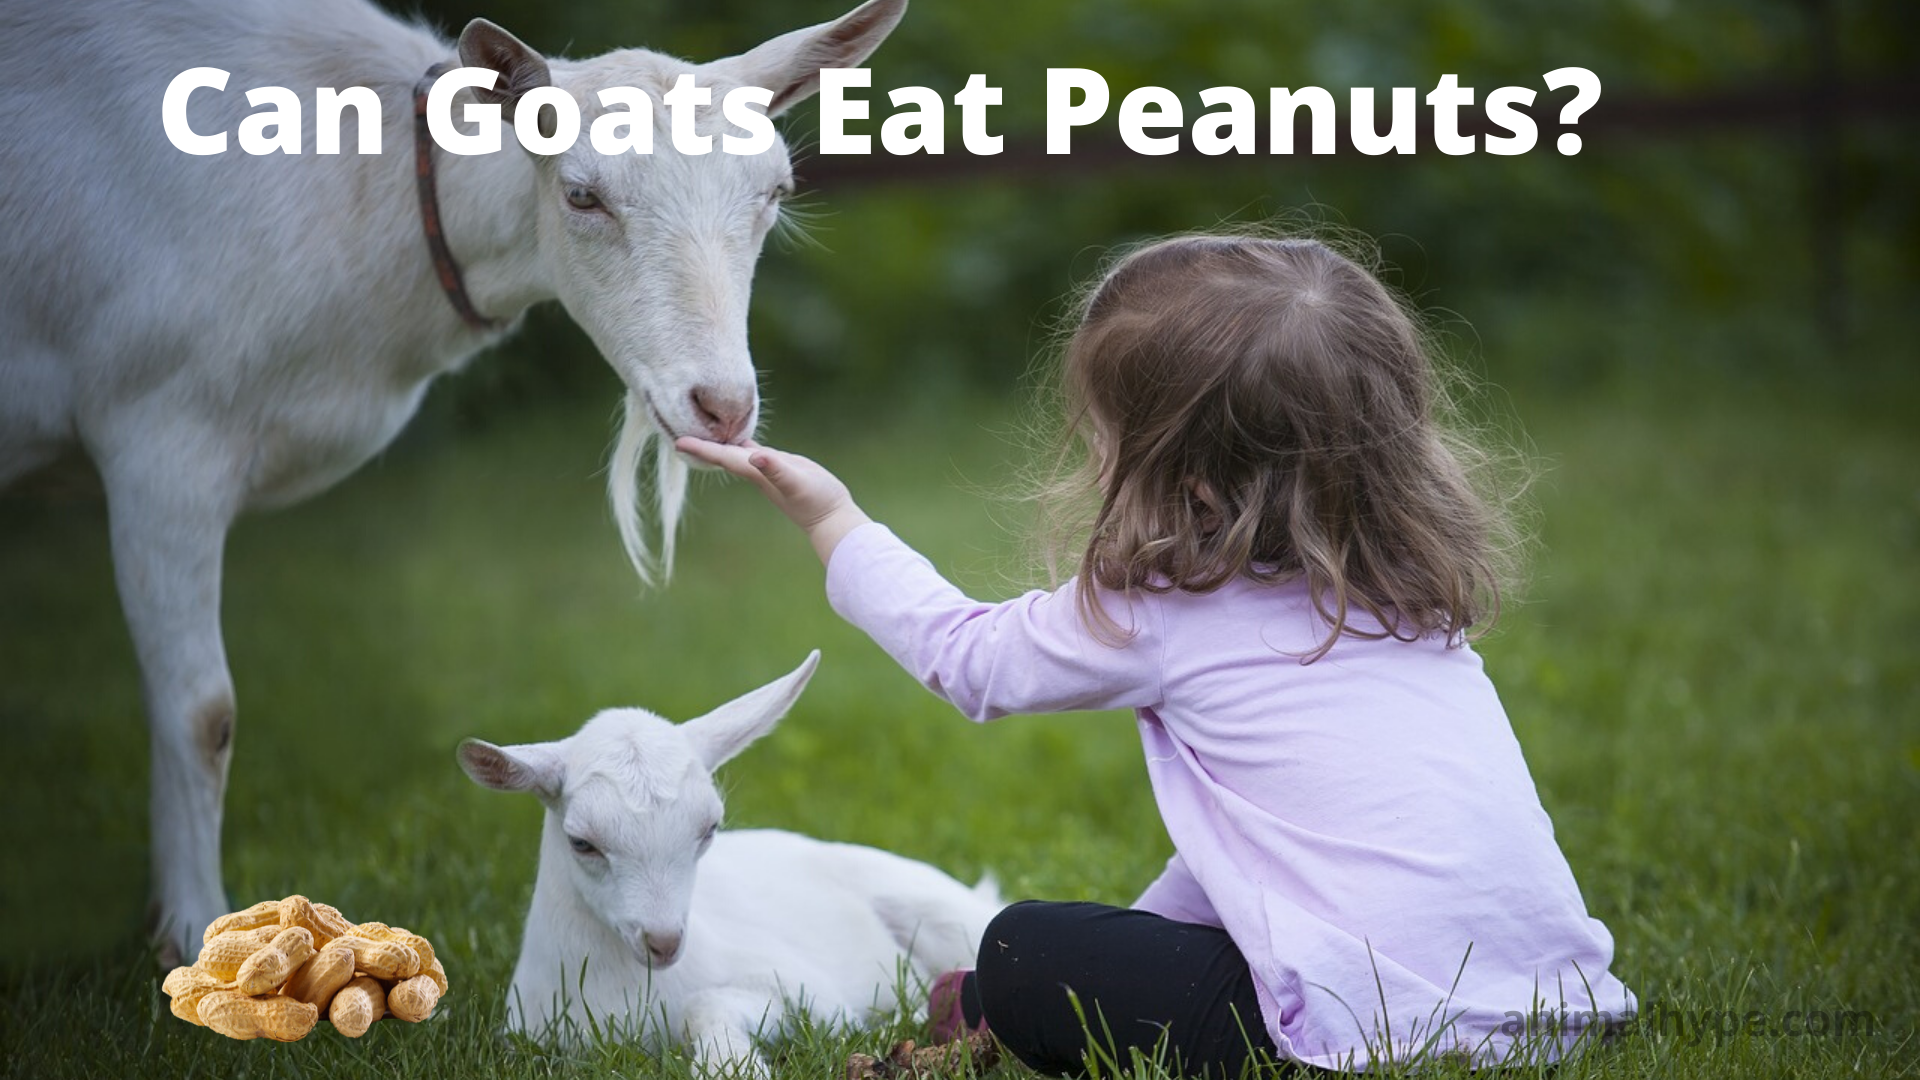 Can Goats Eat Peanuts